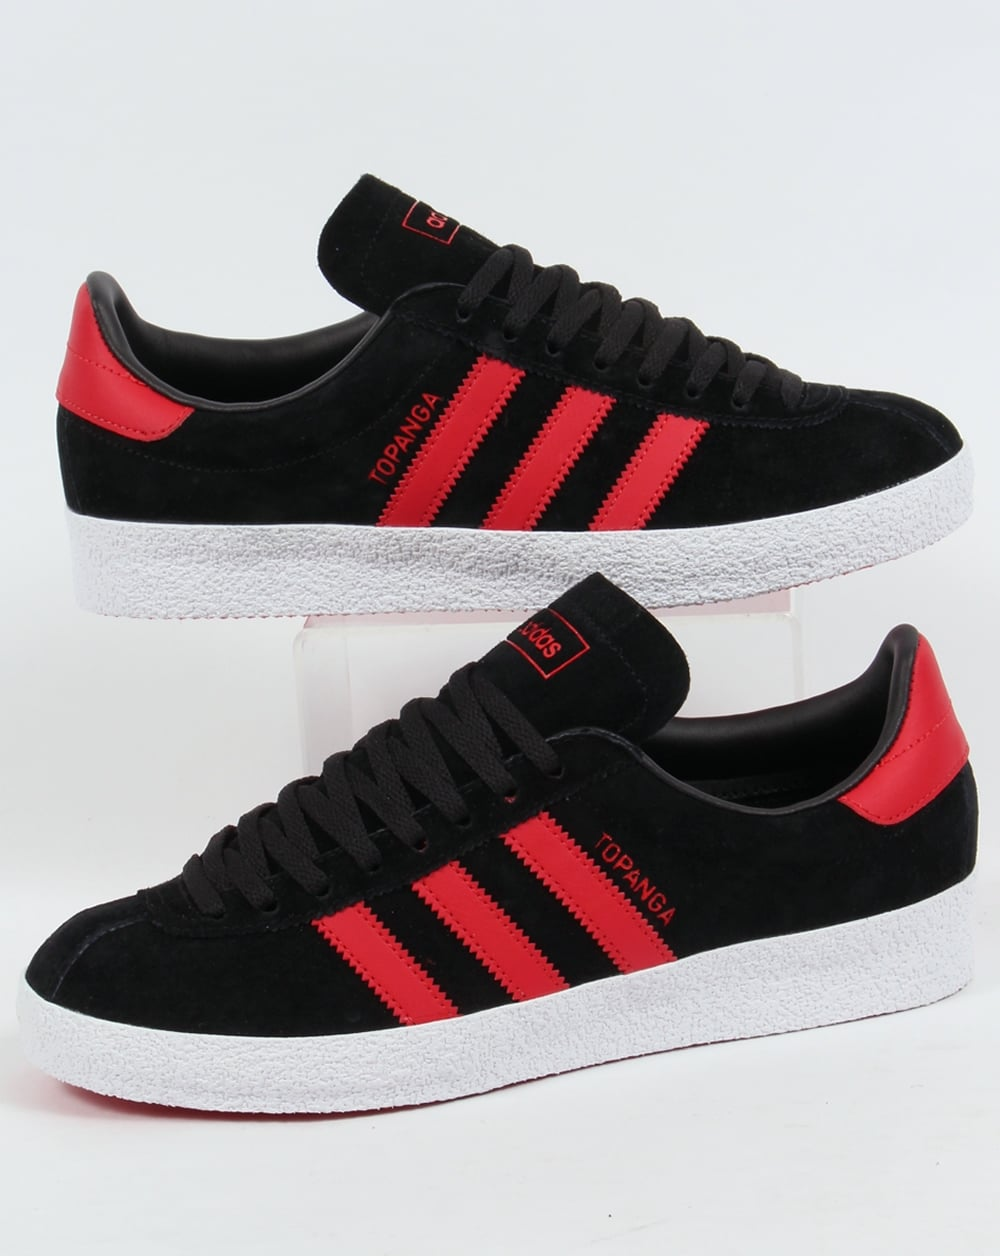 Adidas Topanga Trainers BlackRed